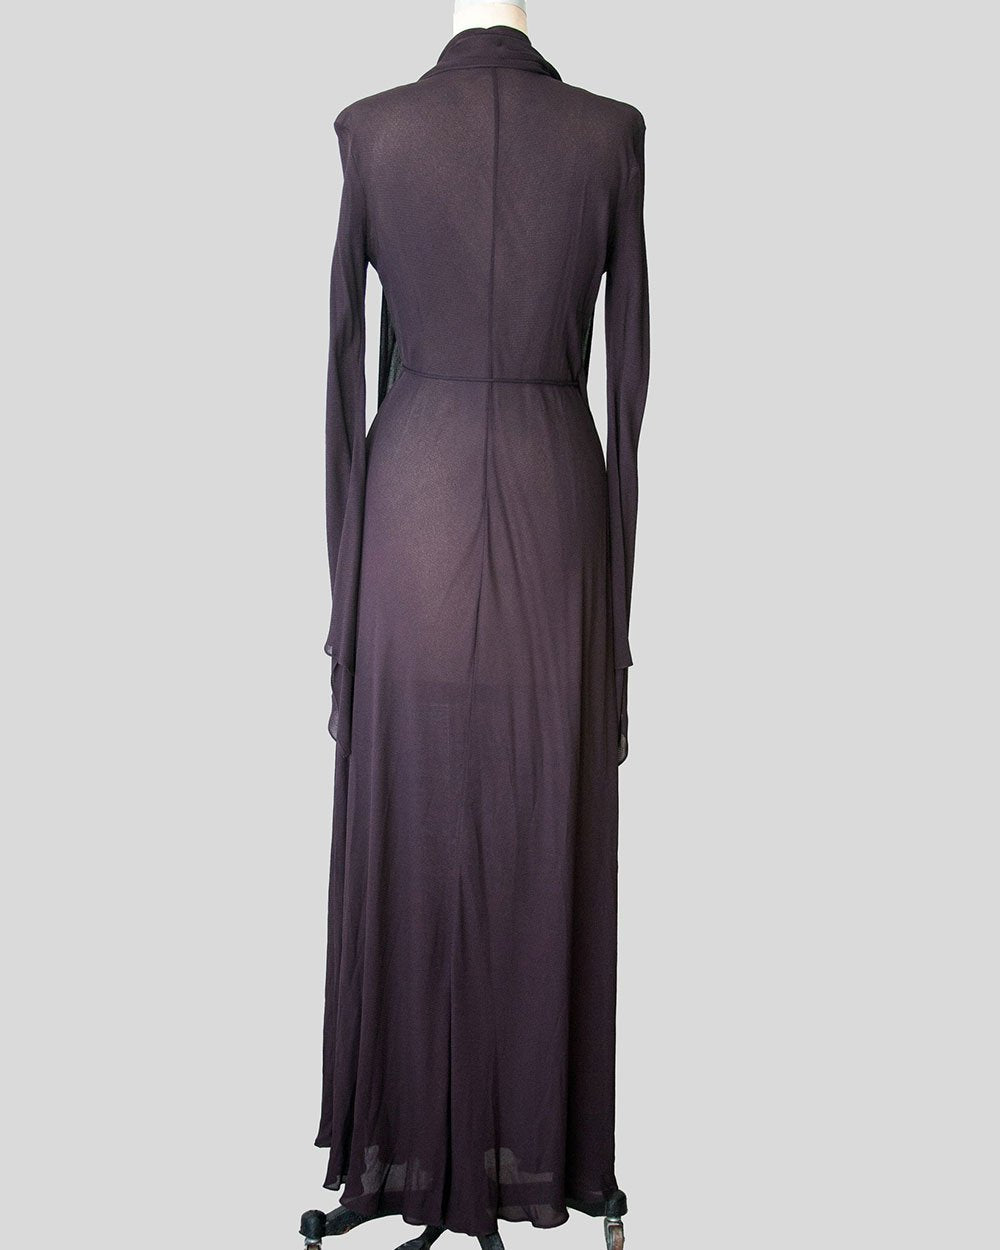 Vintage Donna Karan, Floor Length Long Sleeve Wrap Dress